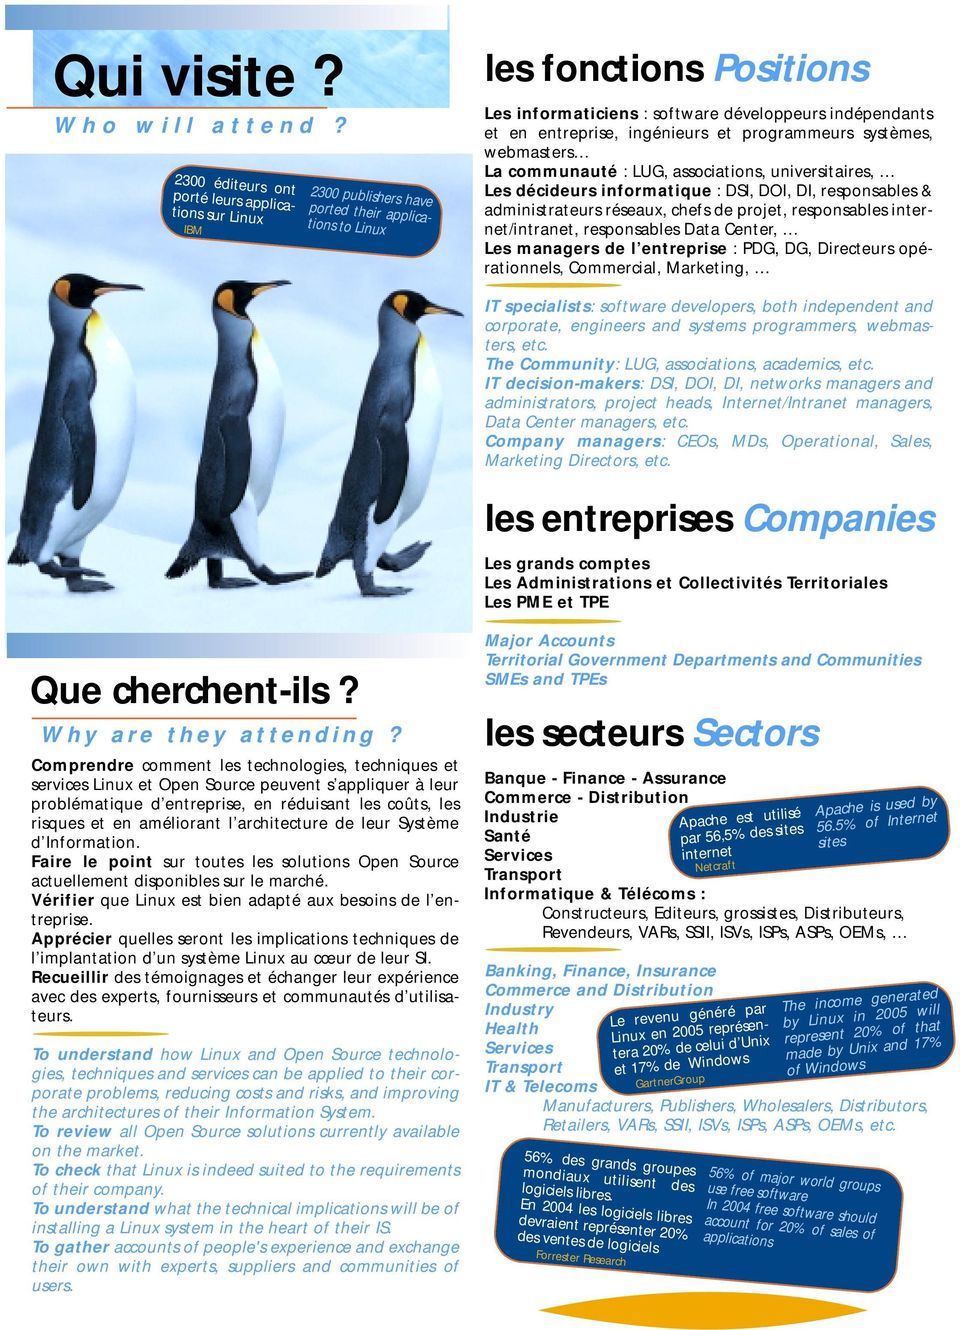 entreprise, ingénieurs et programmeurs systèmes, webmasters La communauté : LUG, associations, universitaires, Les décideurs informatique : DSI, DOI, DI, responsables & administrateurs réseaux, chefs